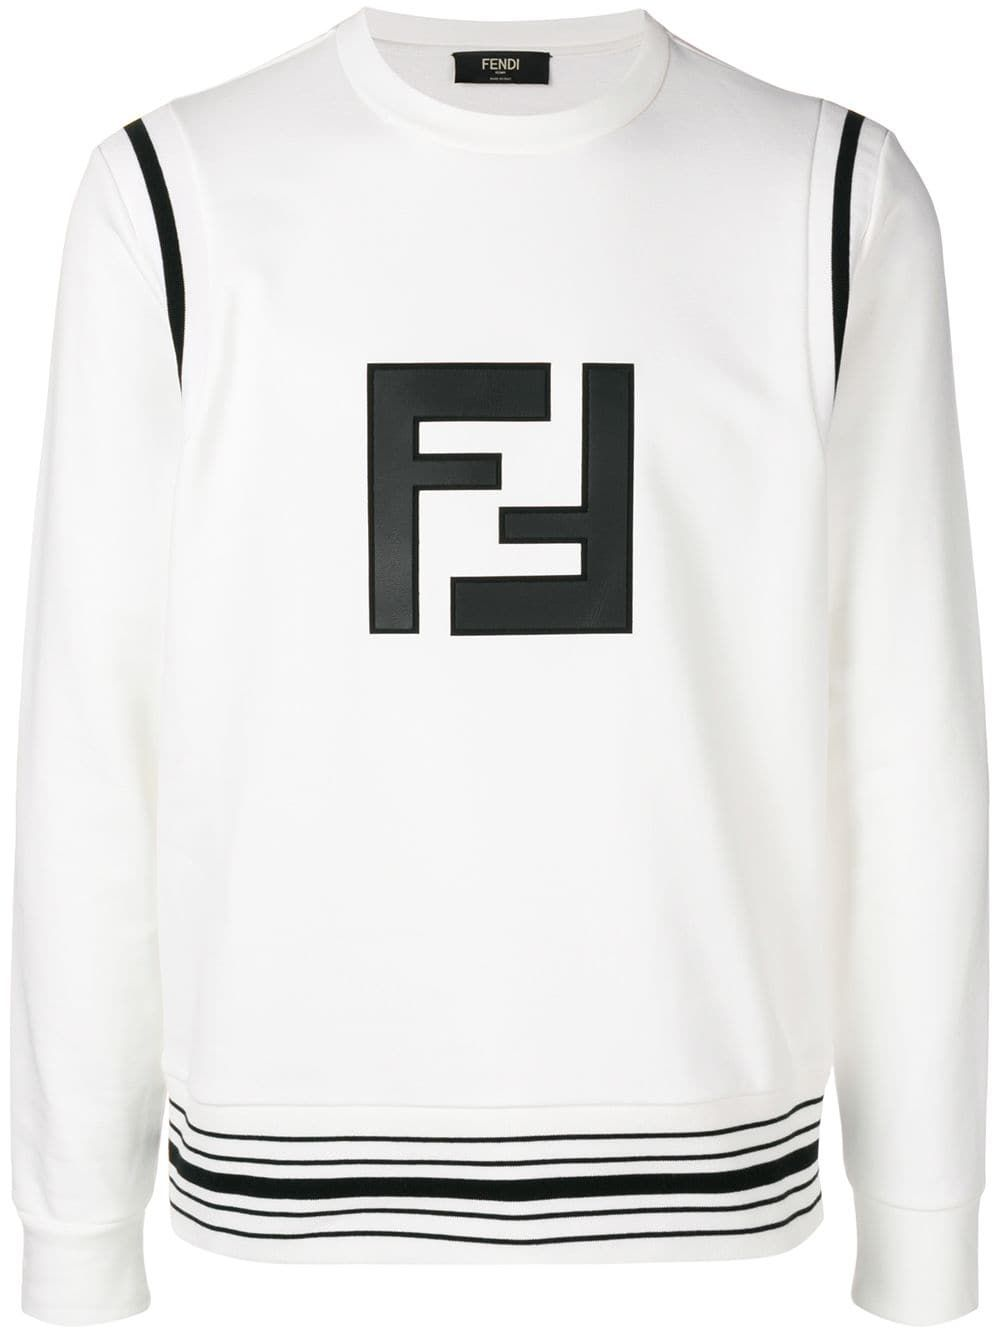 e2045376a0 FENDI FENDI FF LOGO SWEATSHIRT - WHITE.  fendi  cloth